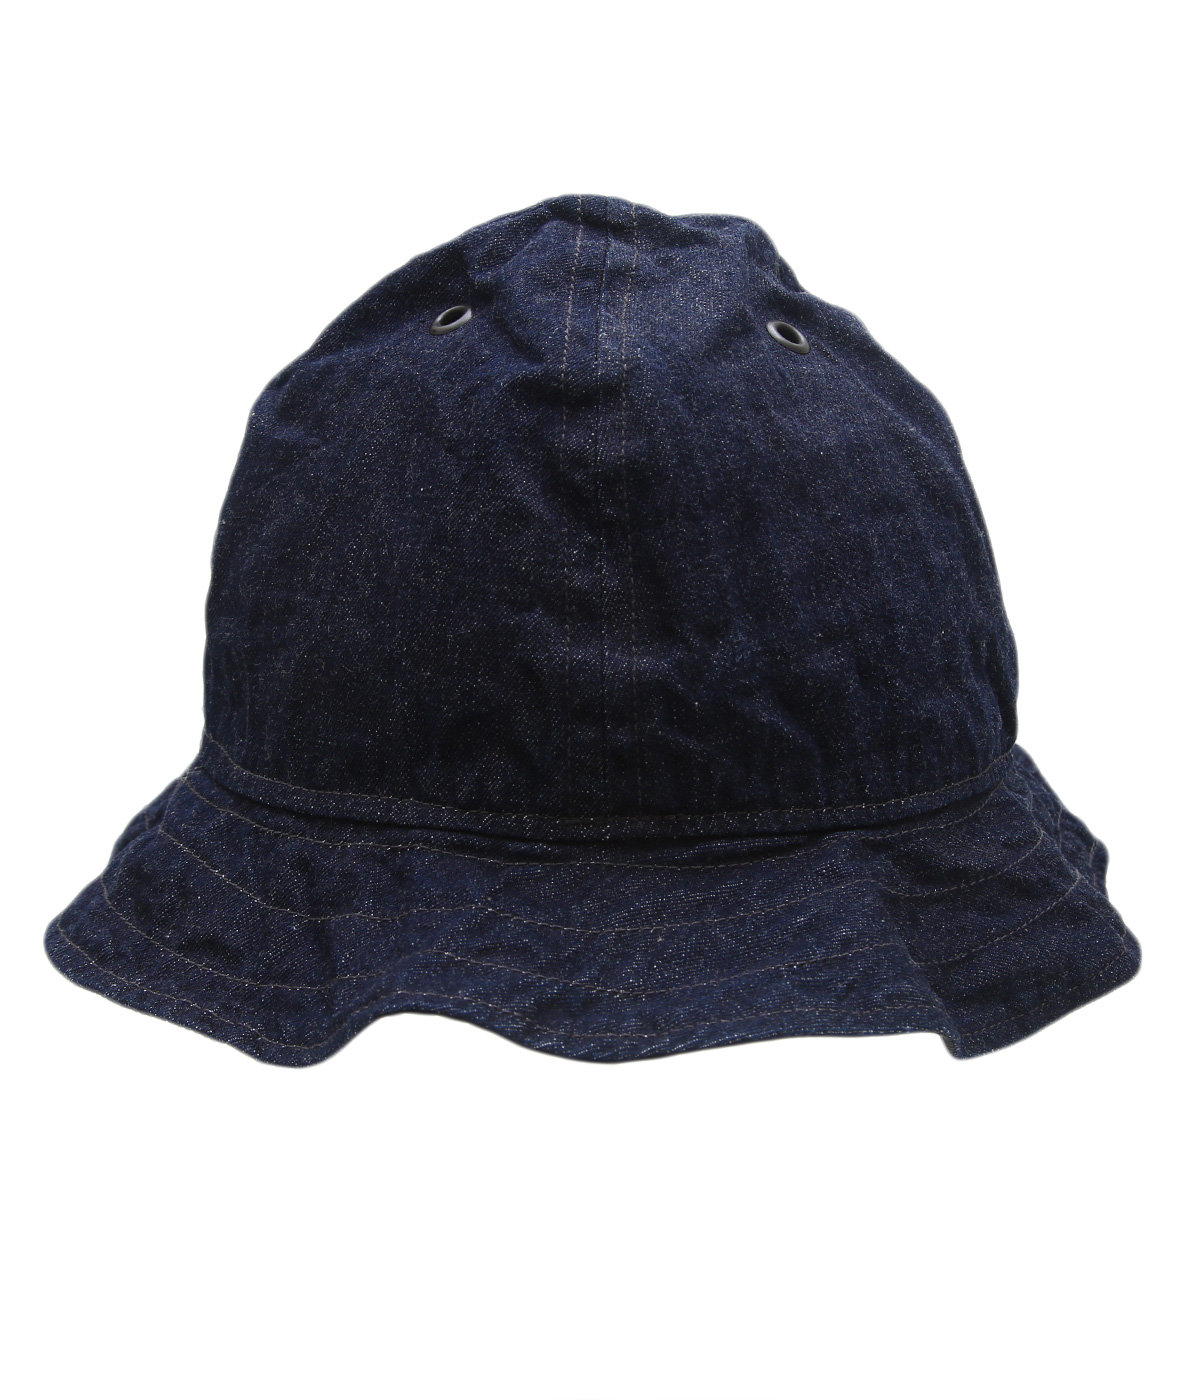 LUCY TAILOR・HAND MADE・REVERSIBLE UTICA HAT